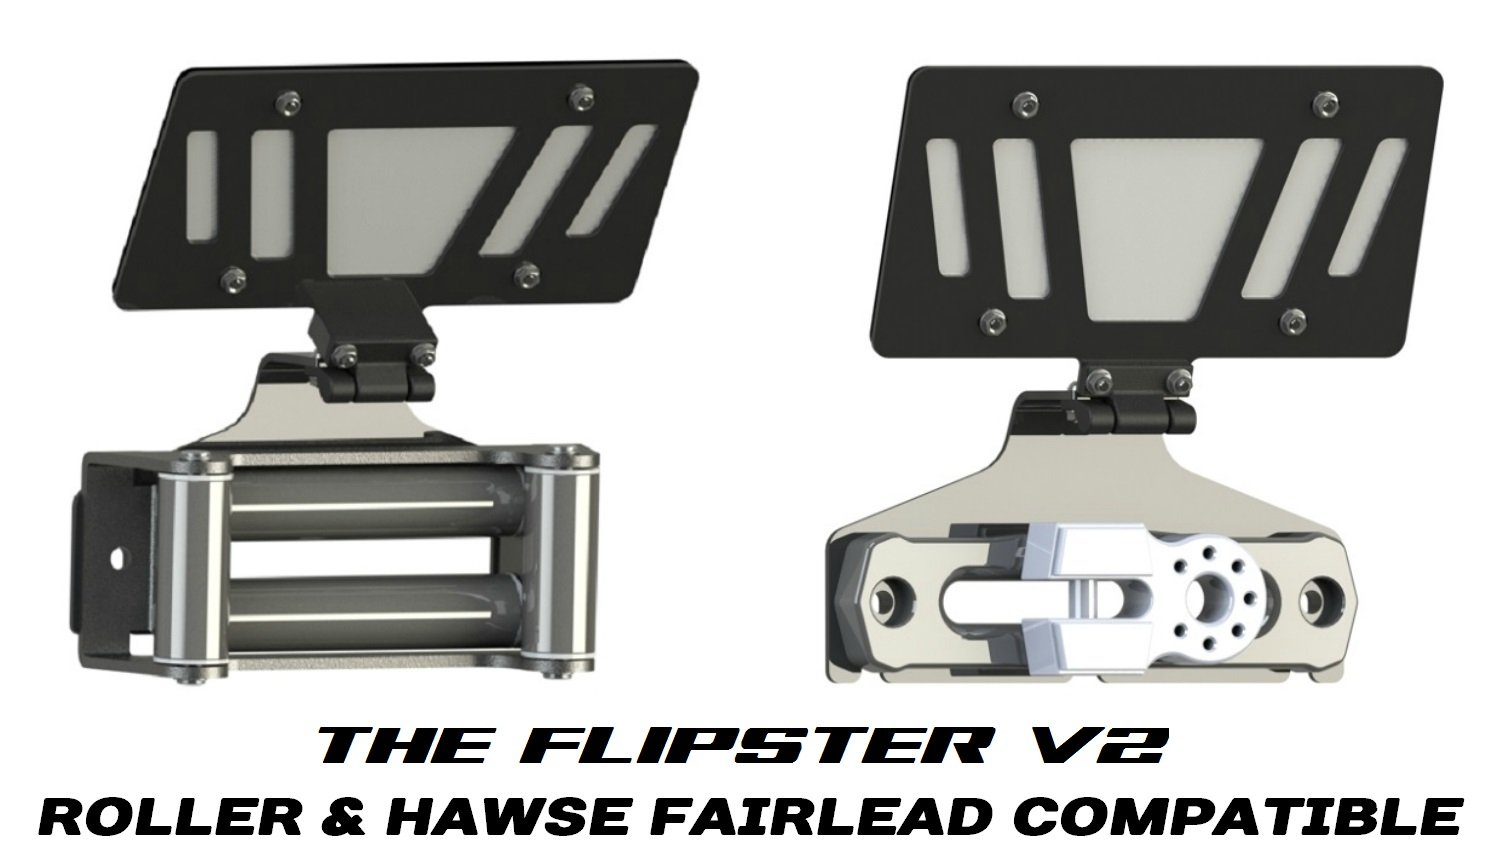 Hawse//Roller fairlead compatible Made in USA//Canada 100001A Cascadia 4x4 Flipster V2 Winch License Plate Mounting system